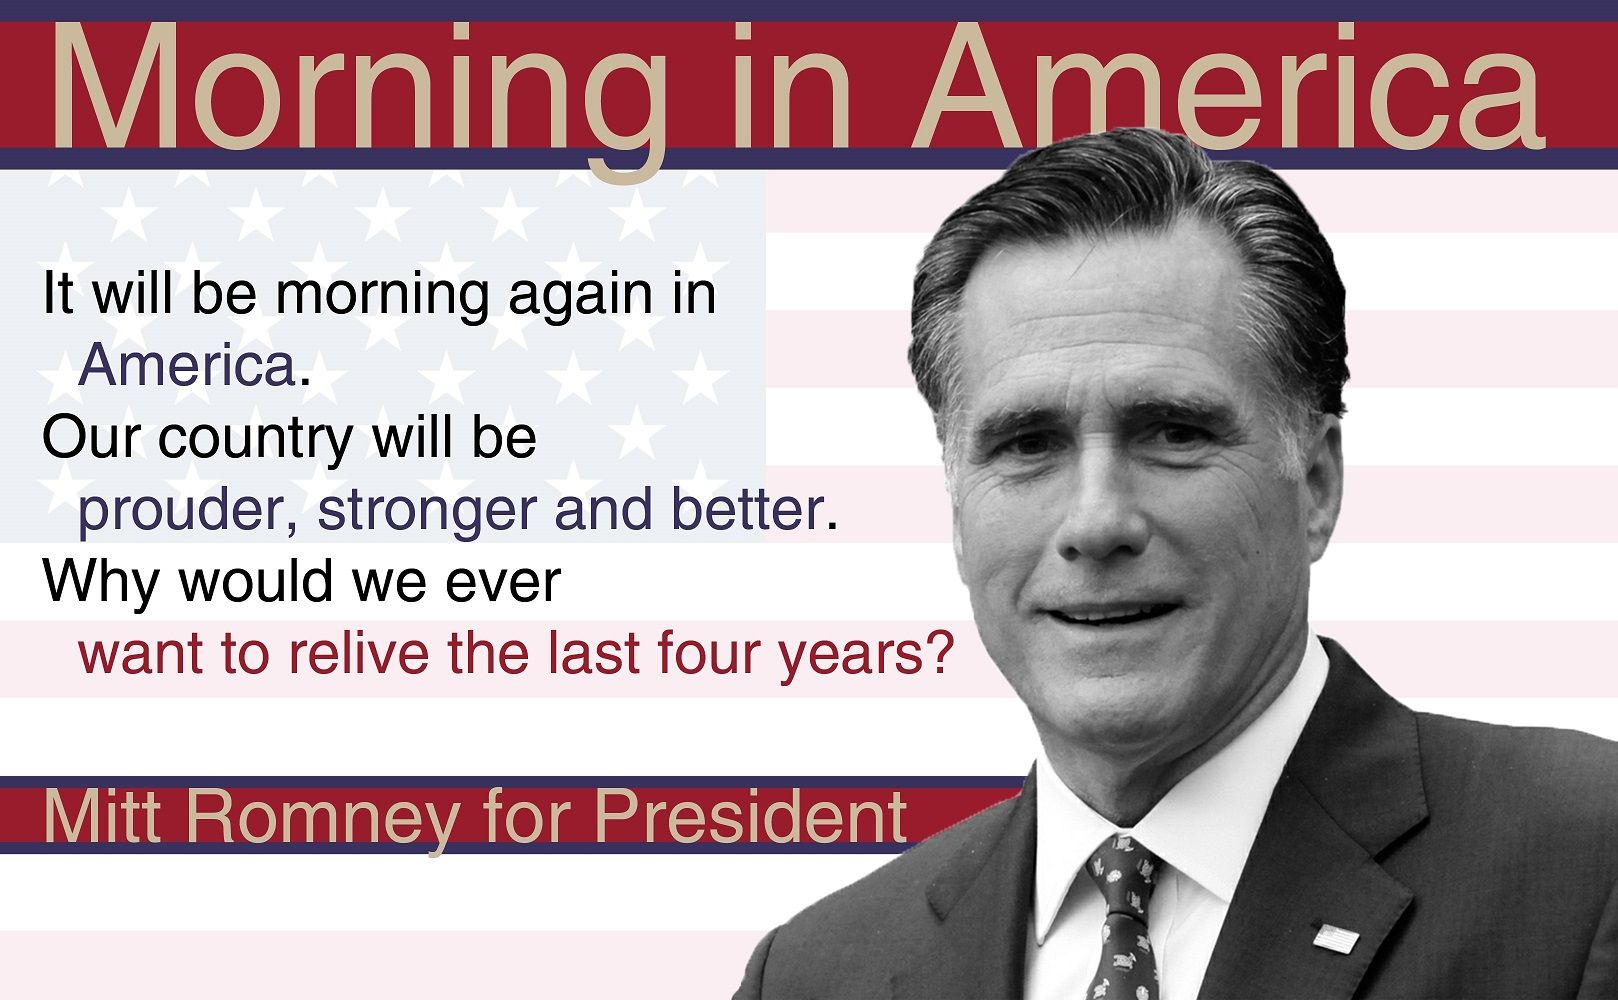 Based Off Of The Reagan Bush Morning In America Ads